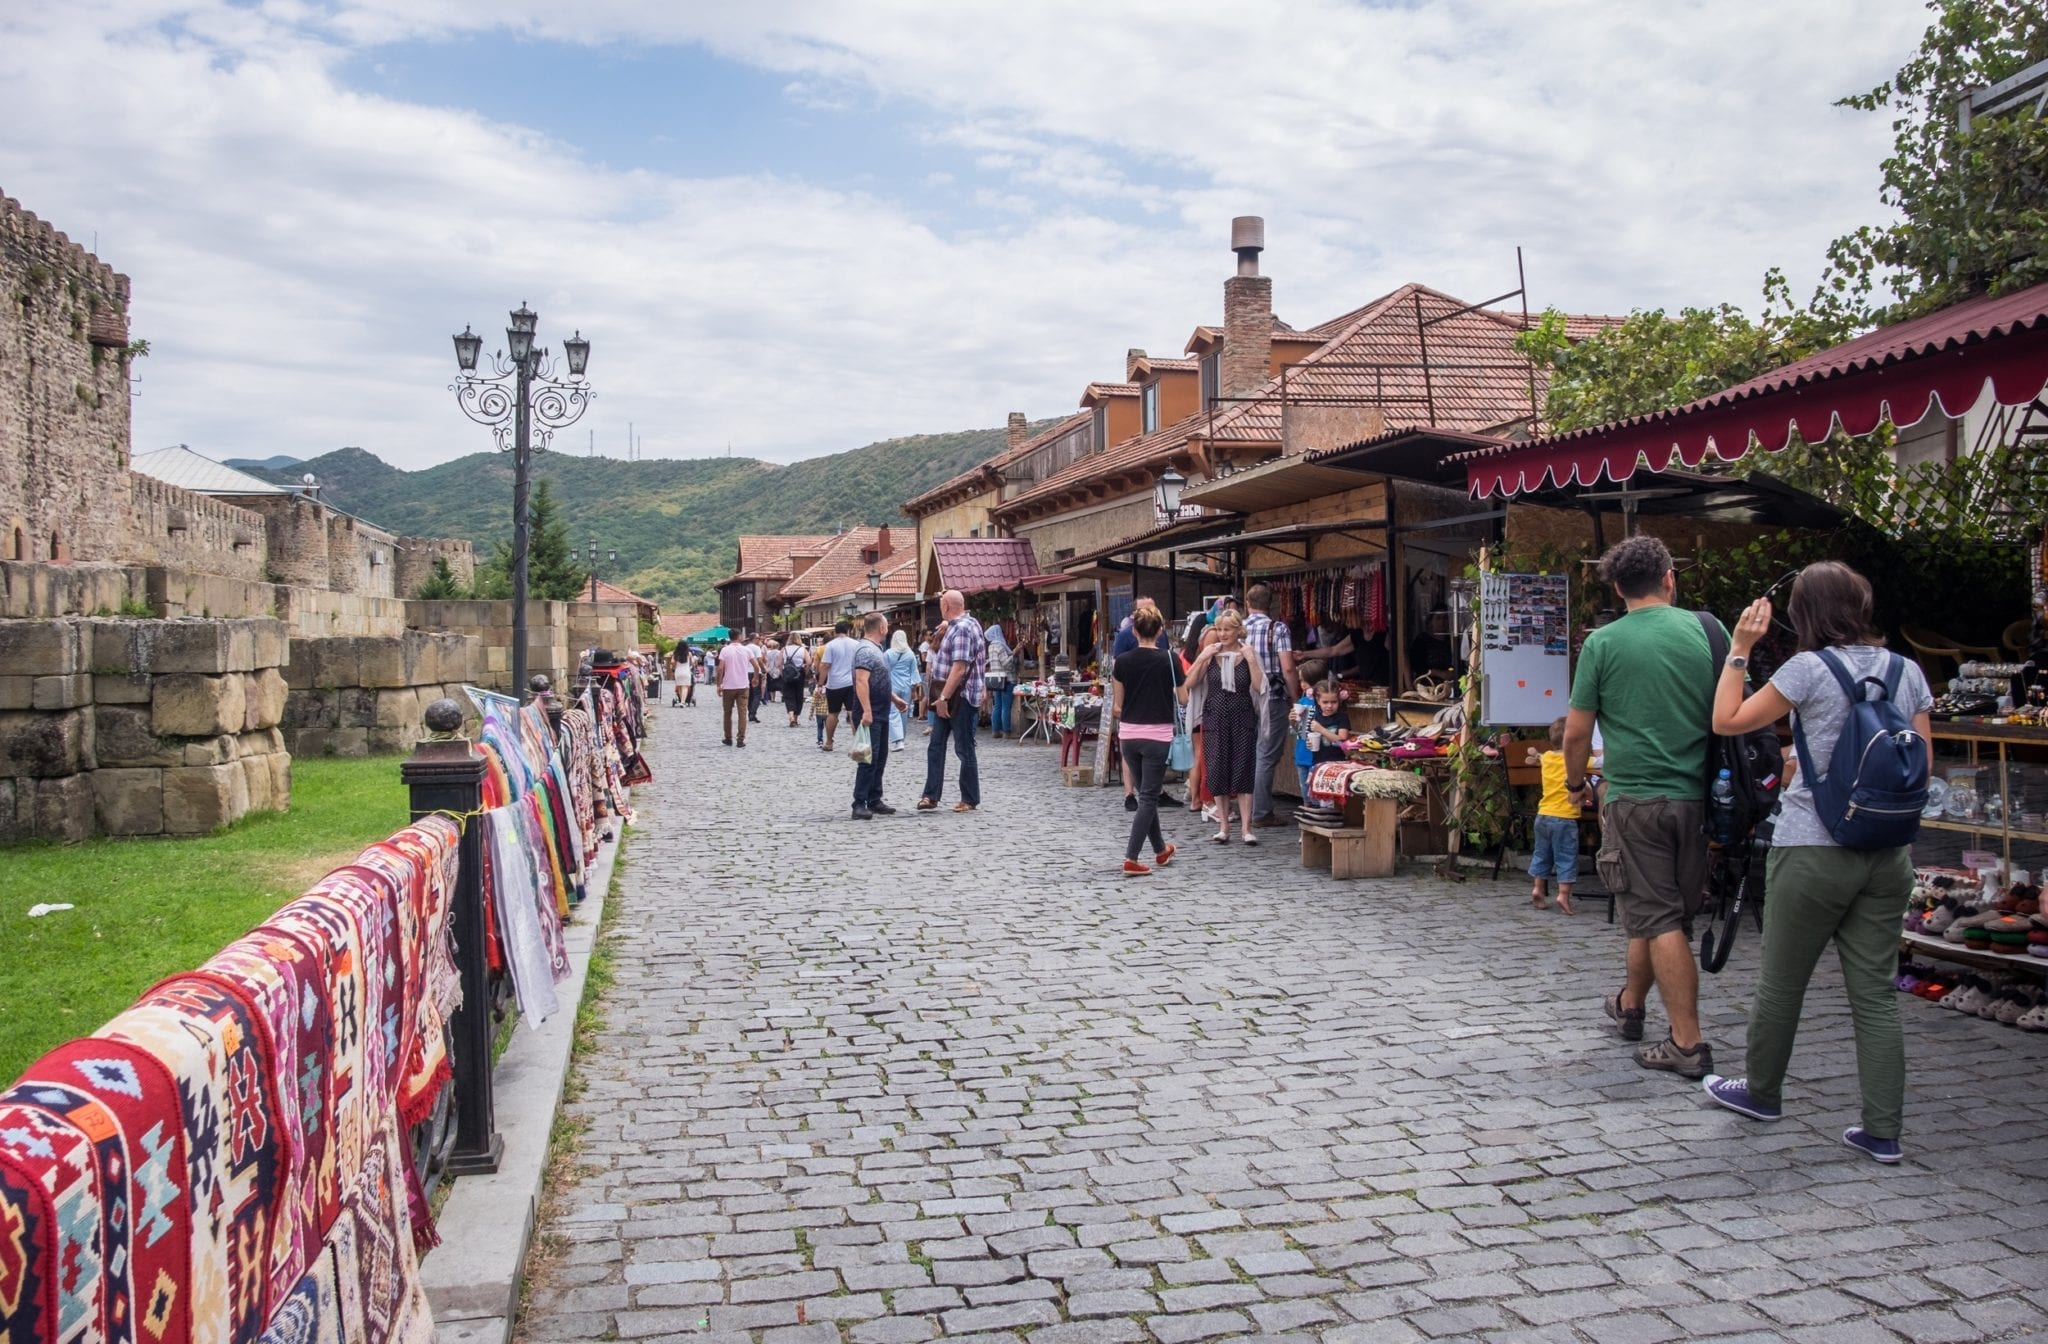 Small kiosks along a cobblestone path in Mtskheta, Georgia.